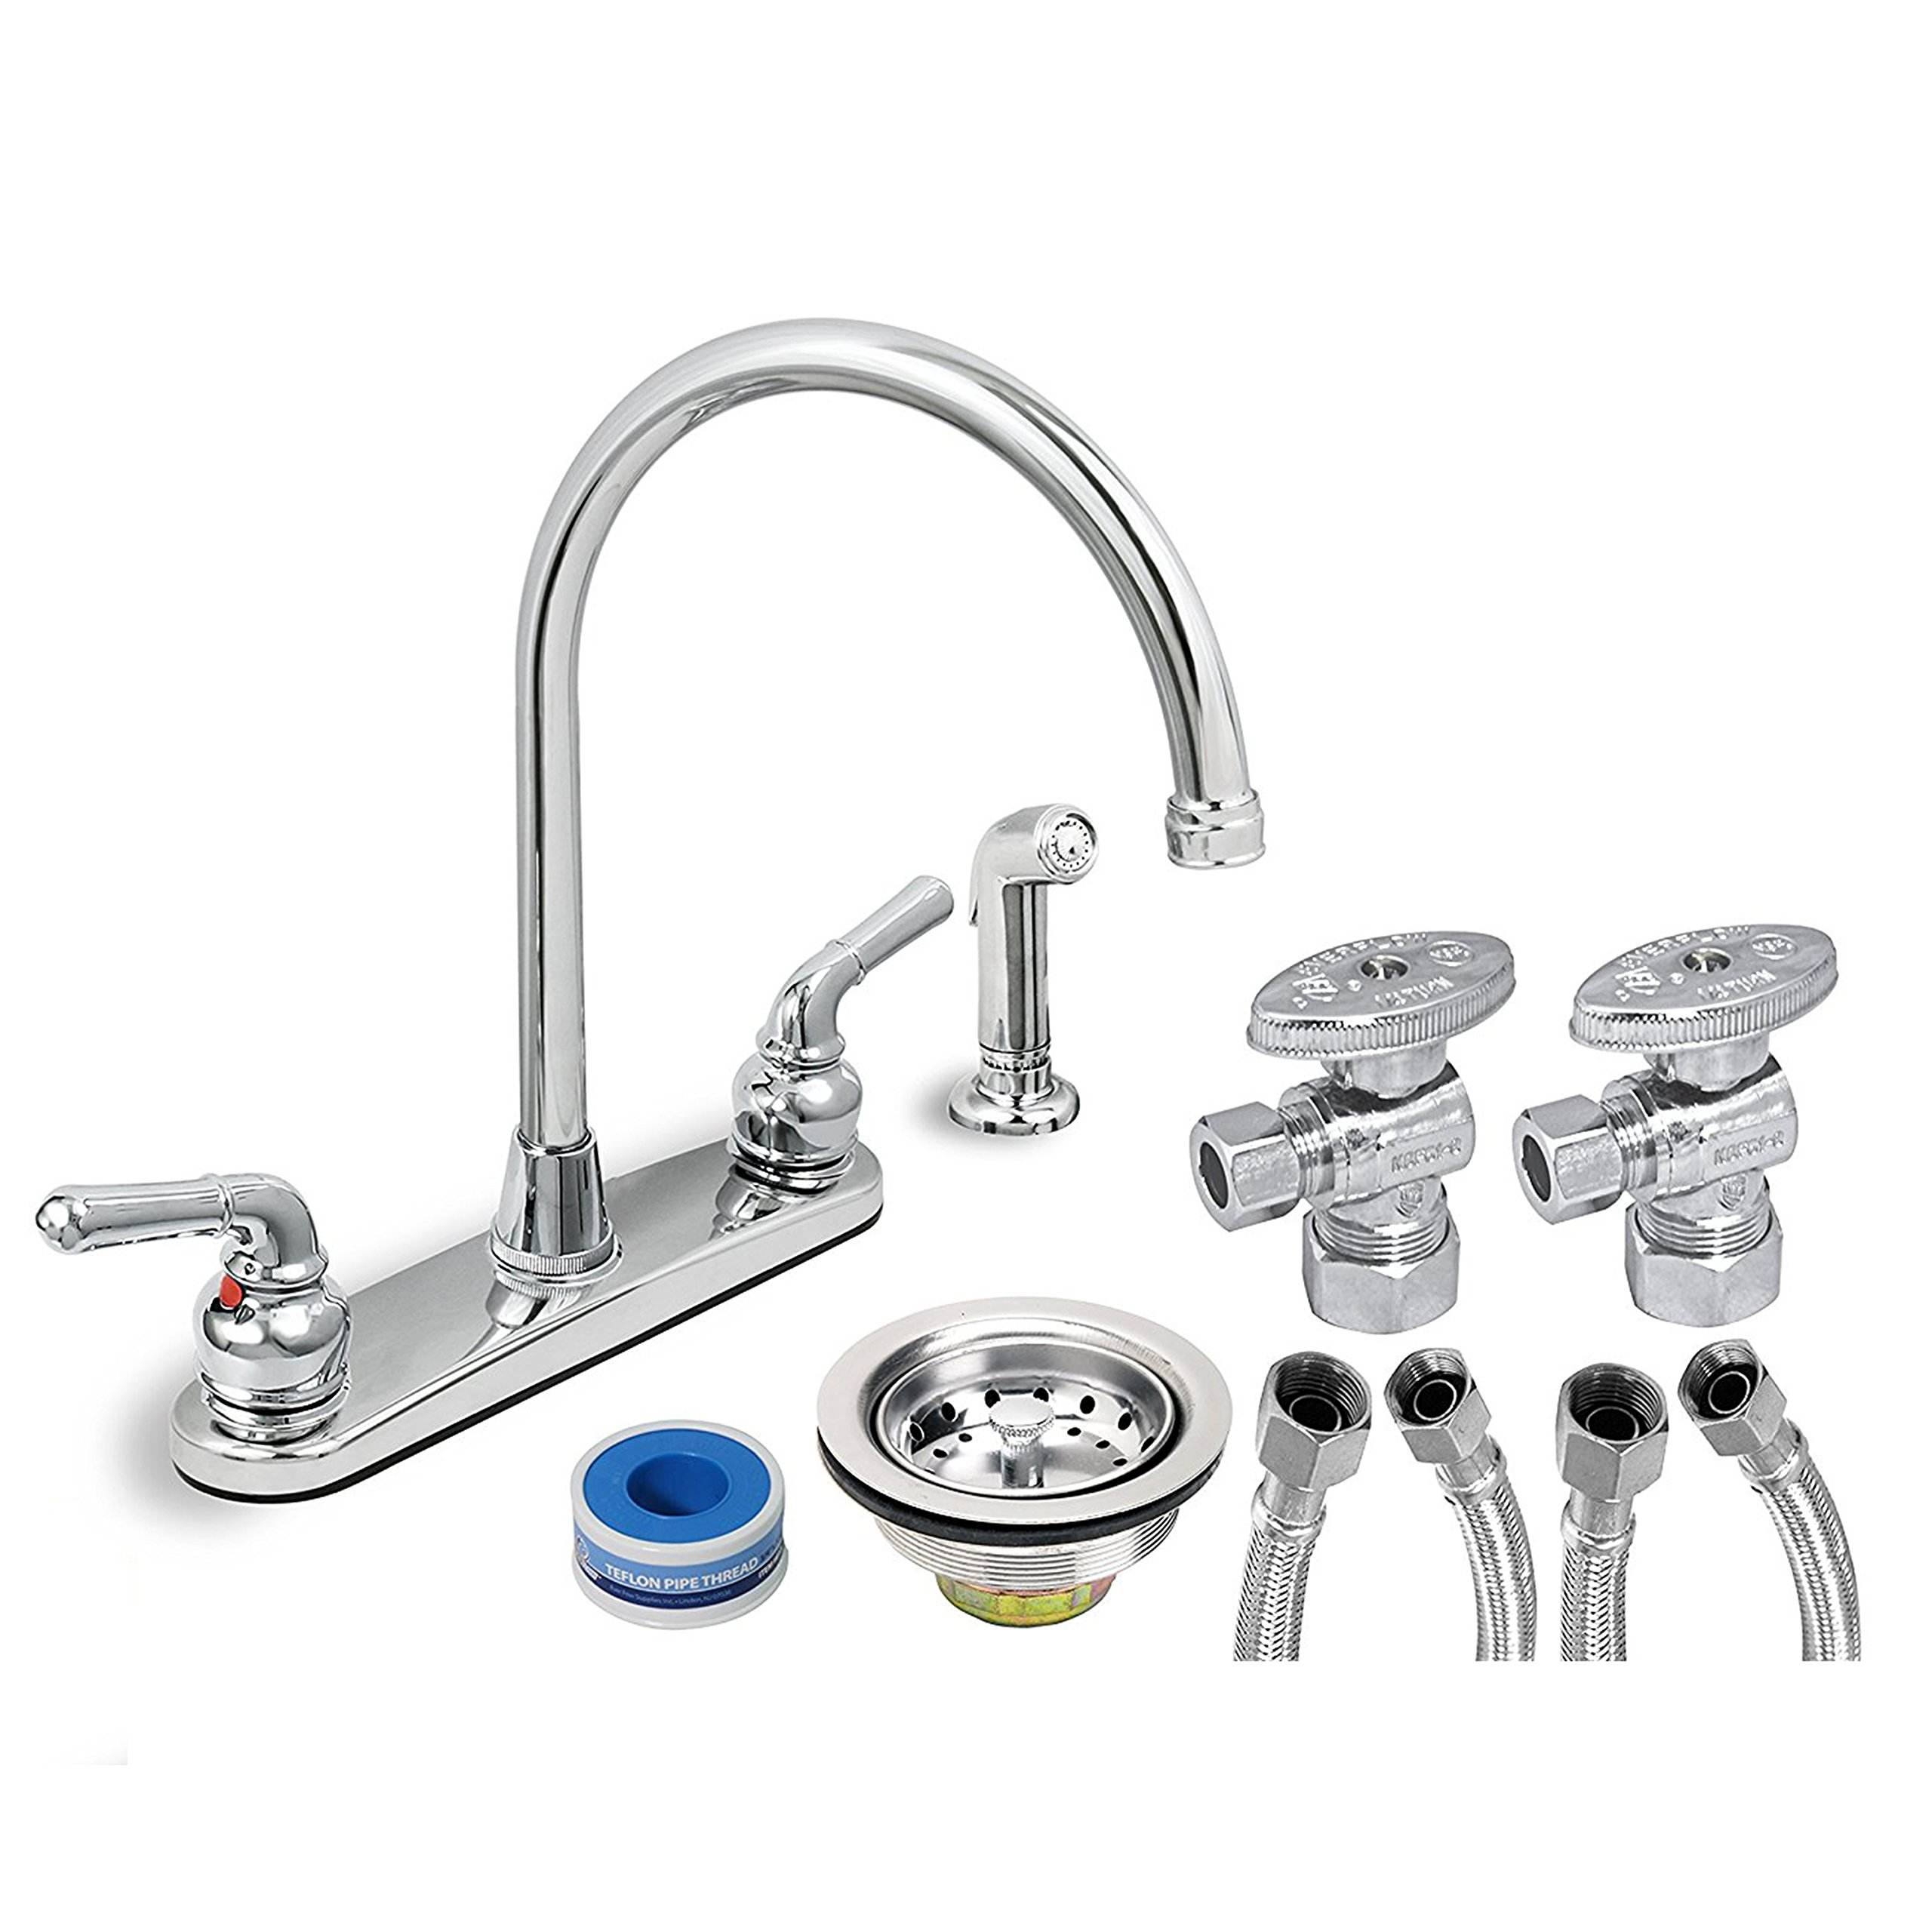 EverFlow Two Handle Kitchen Faucet Complete Installation Kit KFKT17188-20 Chrome Finish Sprayer w/ 20-Inch Long Braided 1/2''  X 3/8'' Supply Lines, Stainless Steel Angle Stops & Lead-Free Sink Strainer